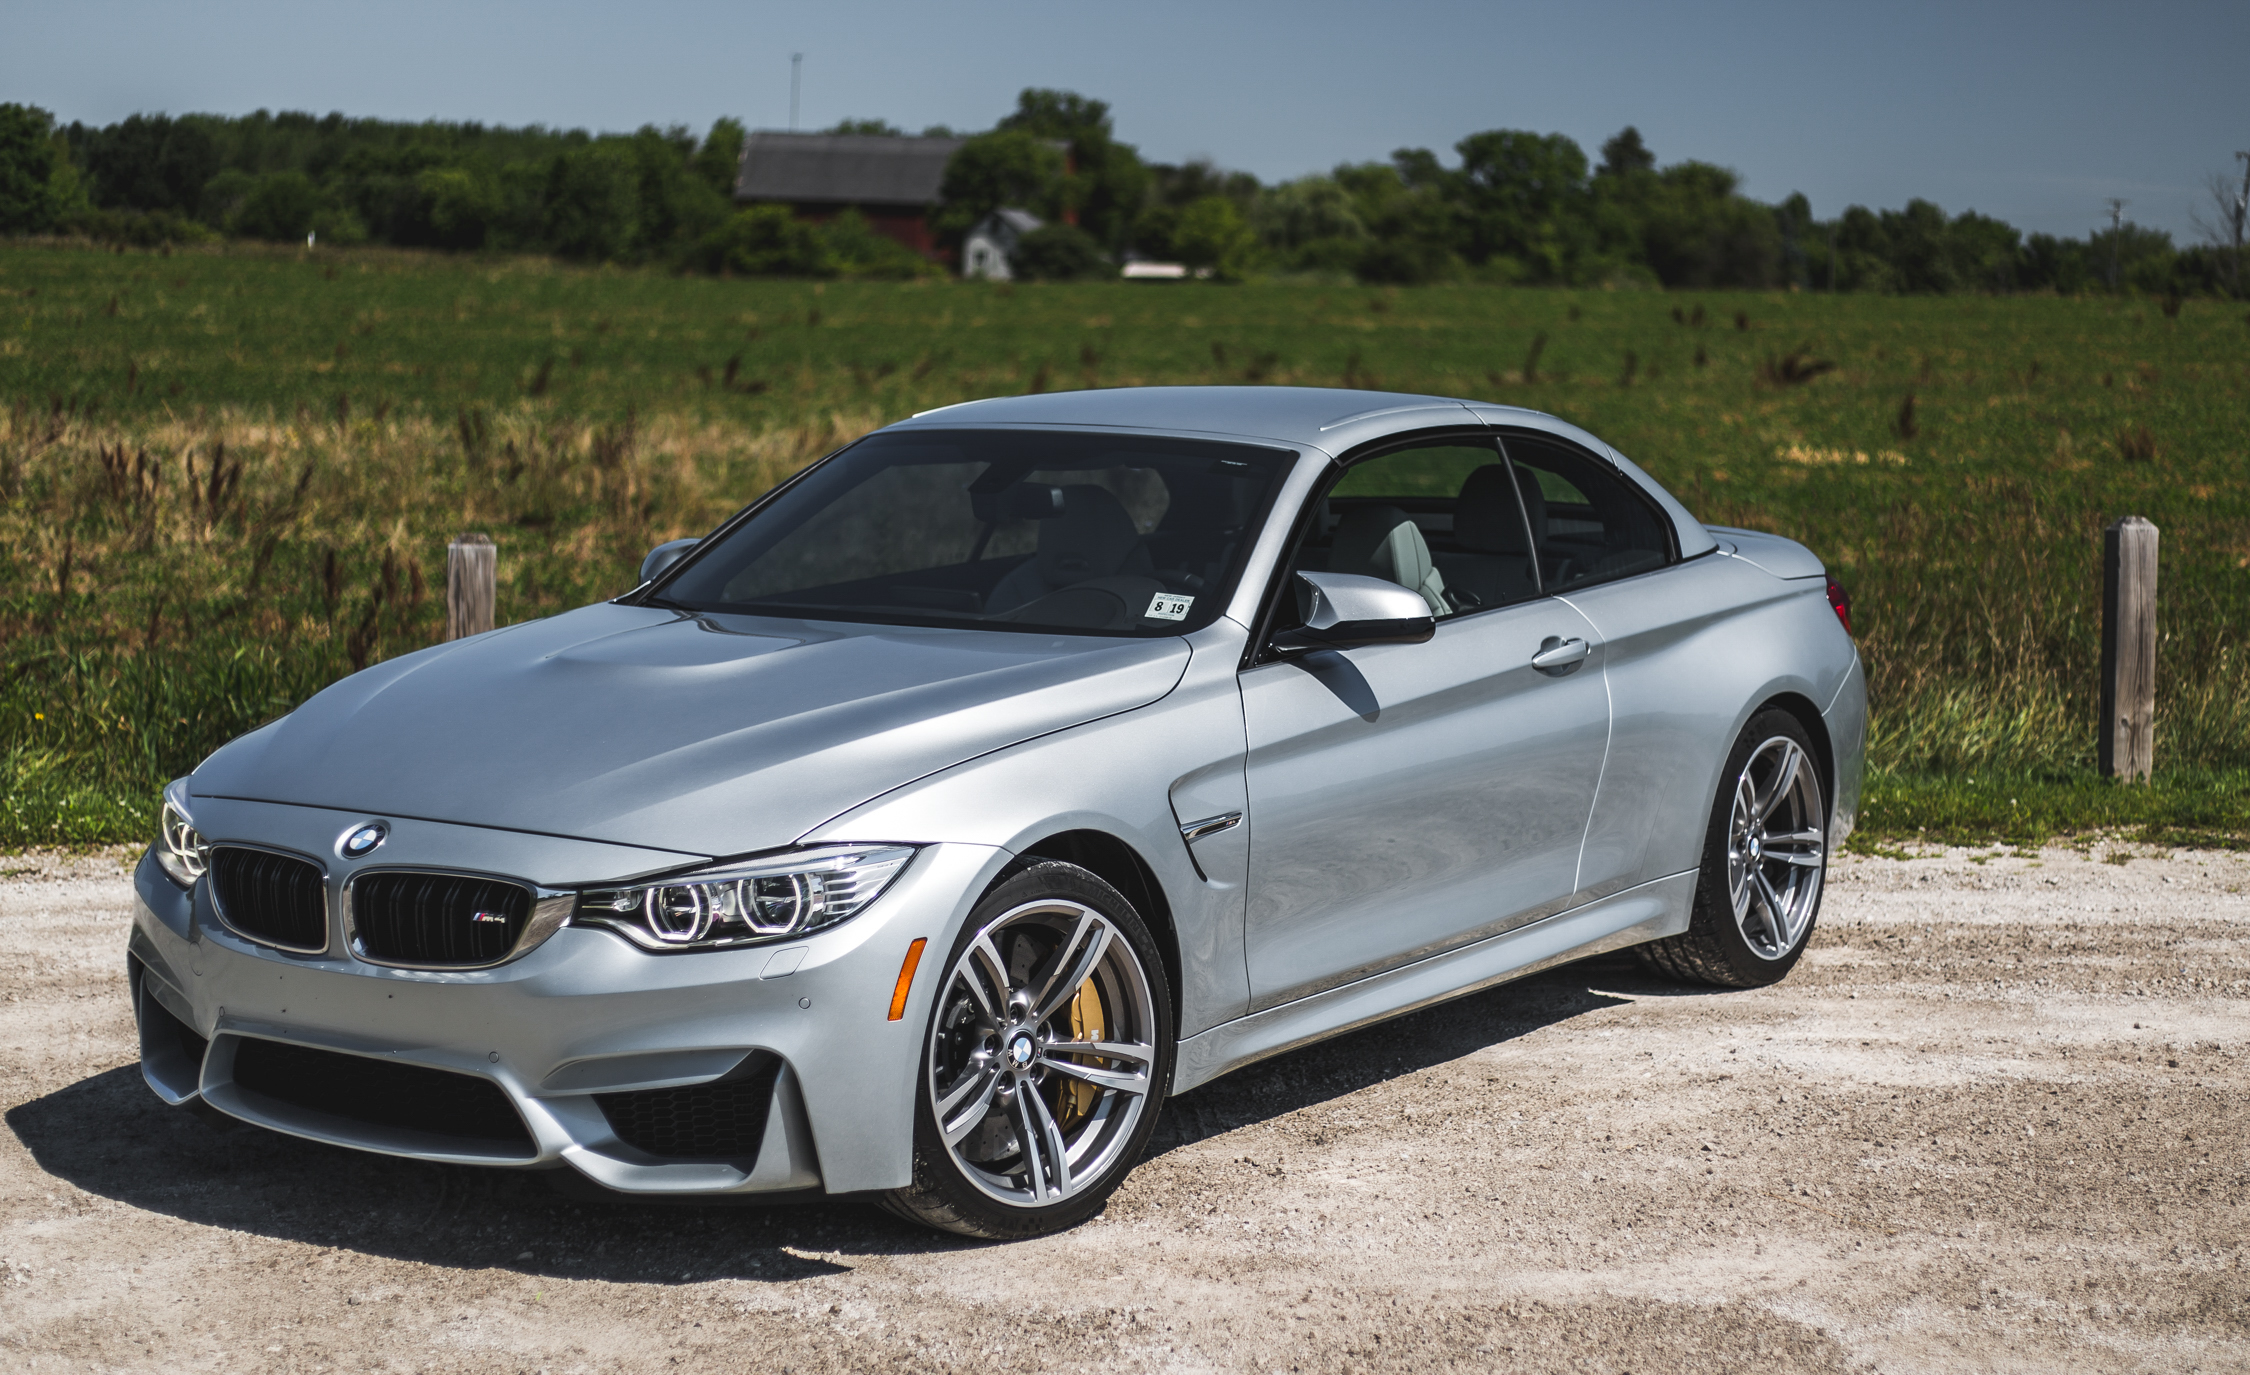 2015 BMW M4 Convertible Top Up Exterior Front and Side